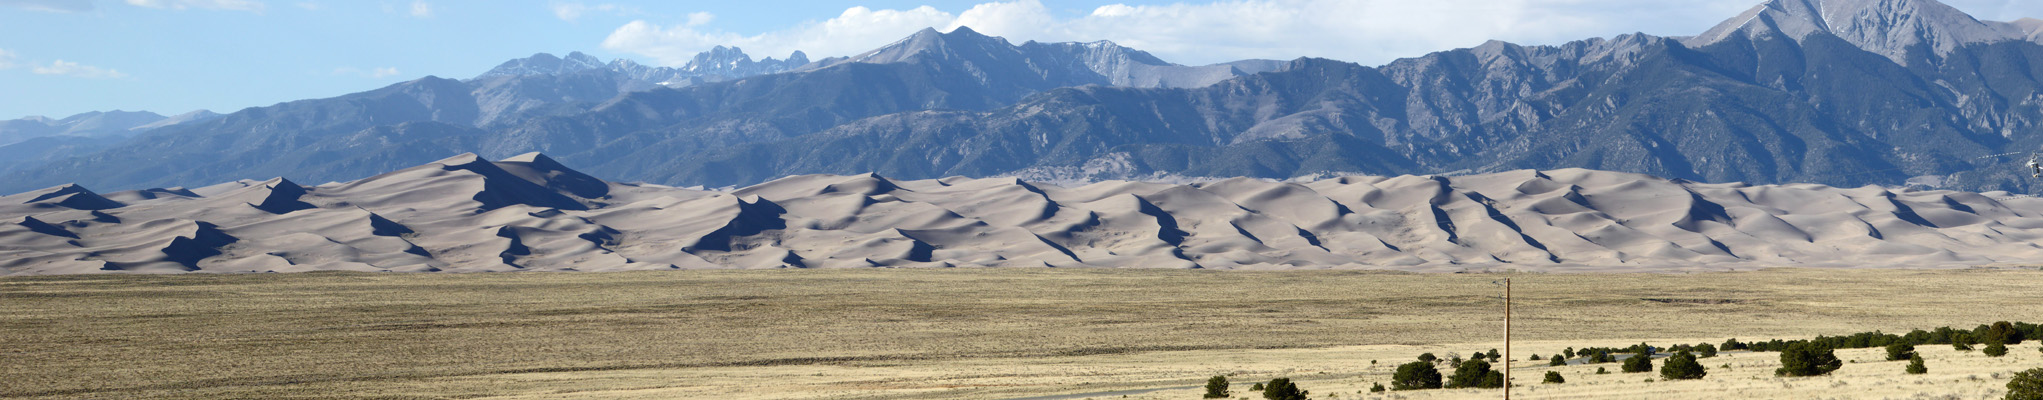 Great Sand Dunes from Great Sand Dunes Oasis RV Park